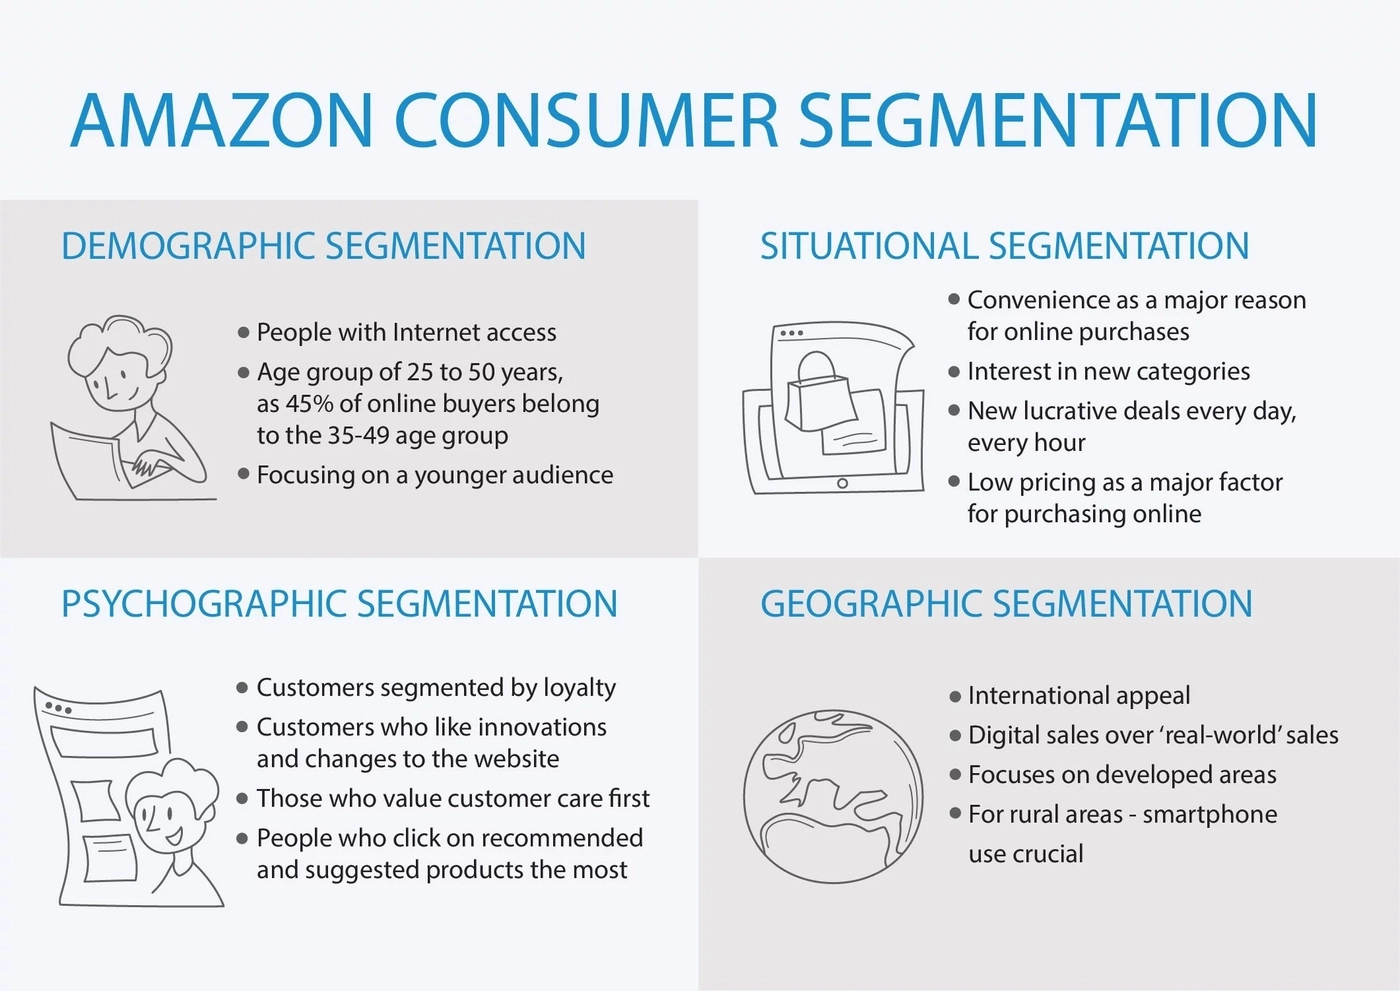 Amazon customer segmentation types and criteria